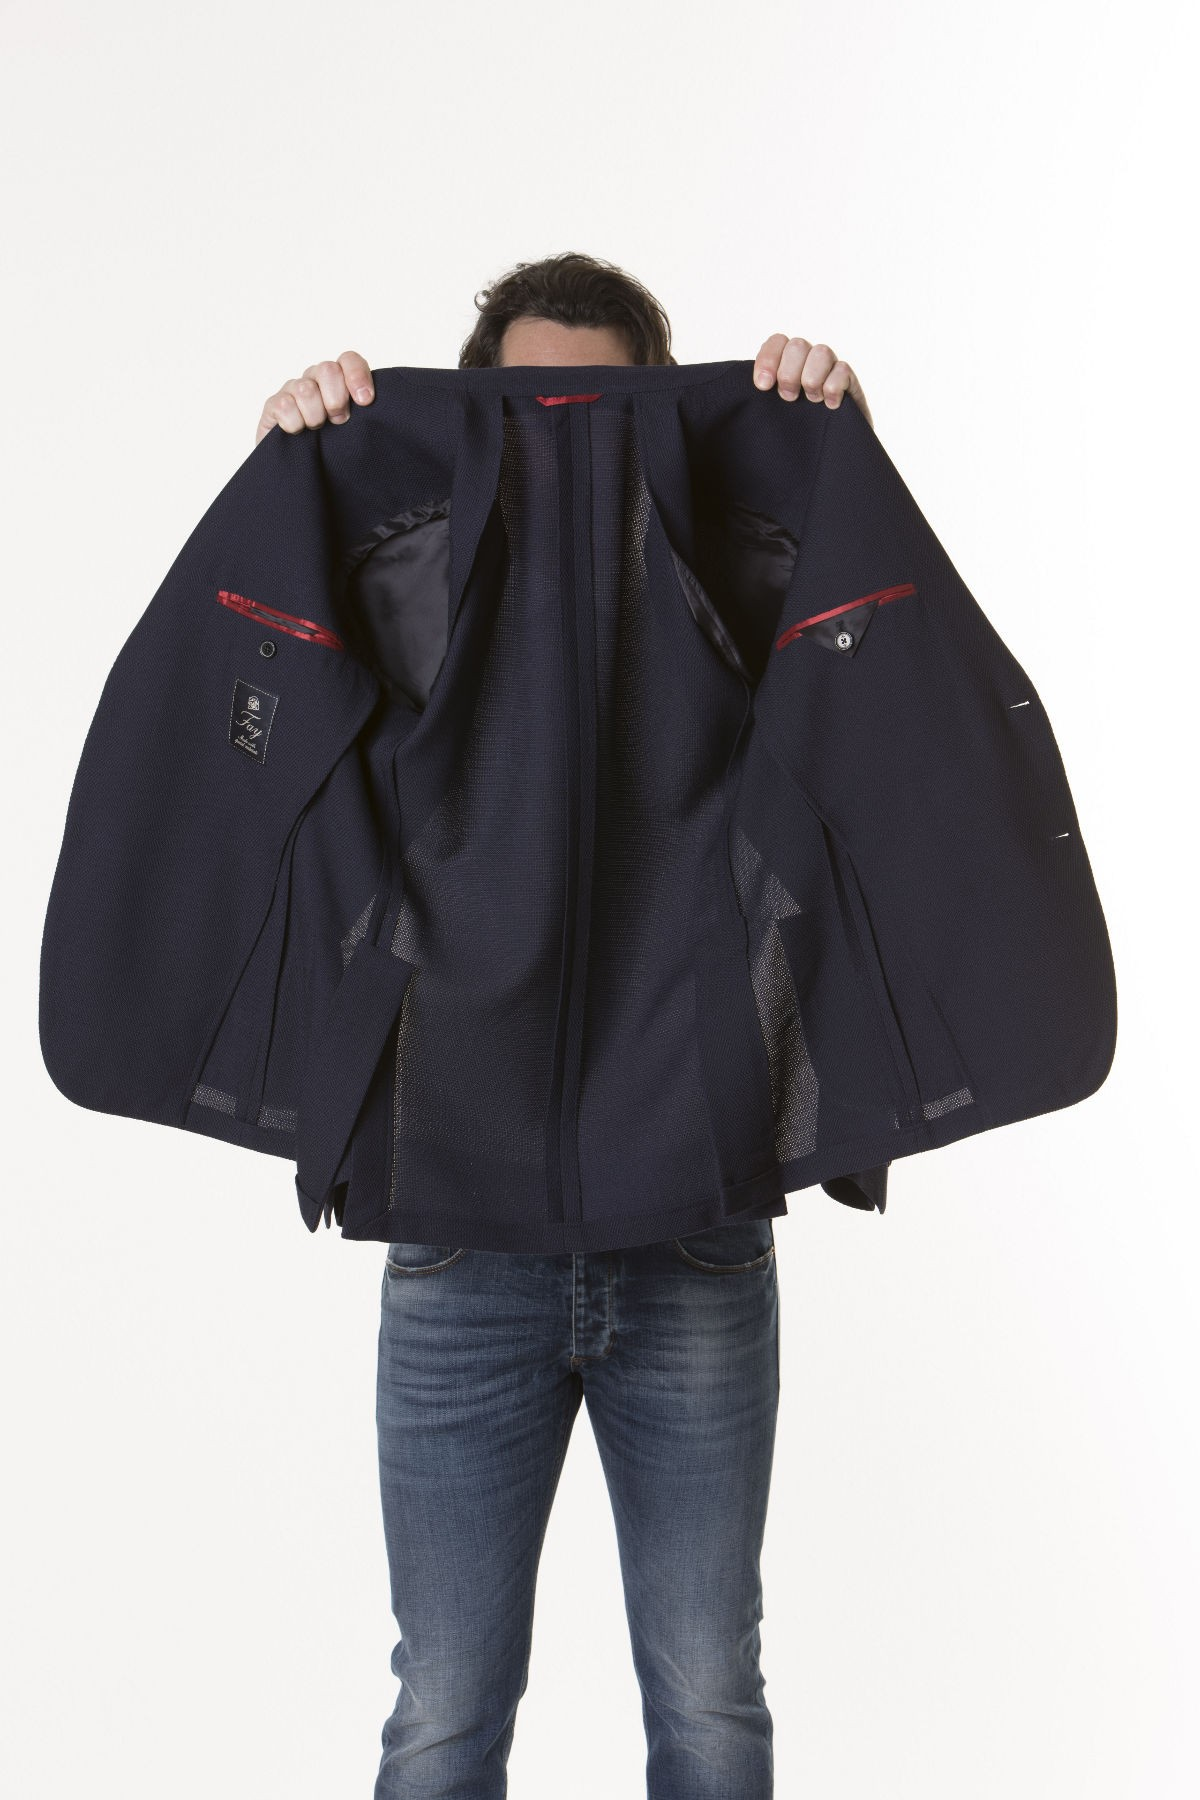 size 40 accd1 72ecb Jacket for man FAY S/S 18